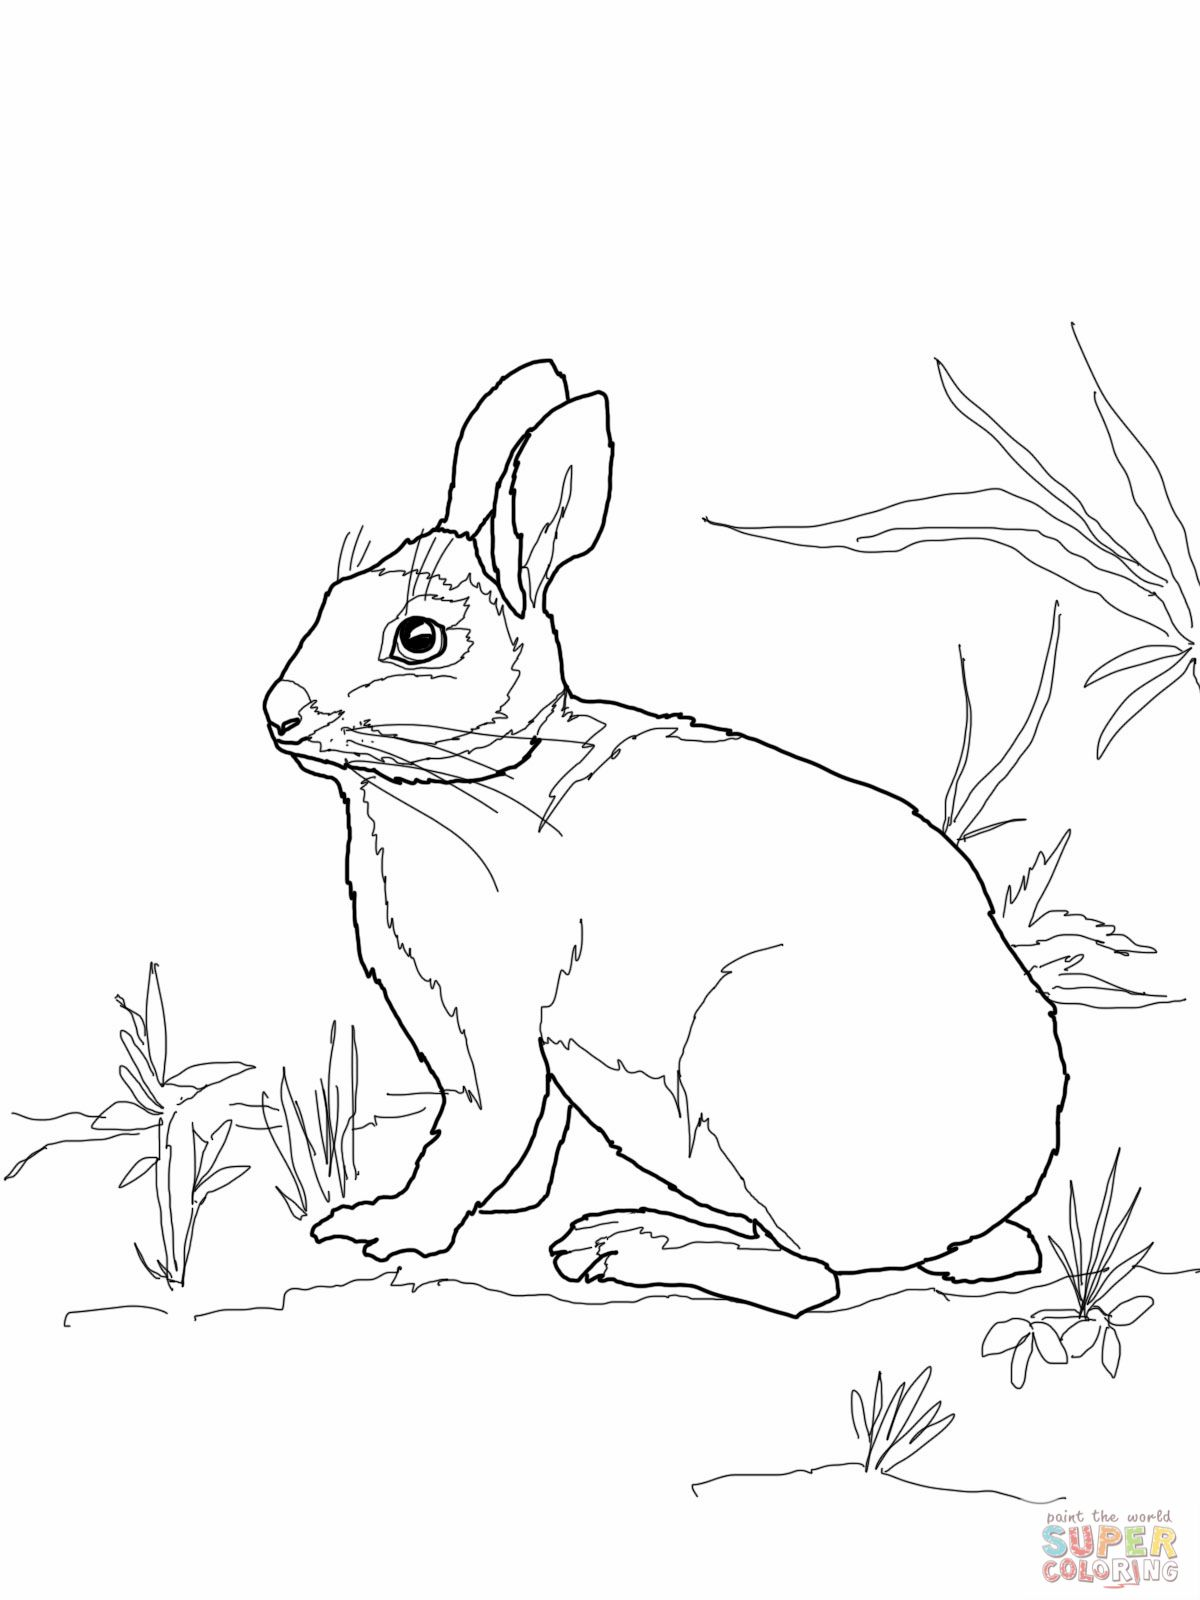 Cottontail Marsh Rabbit Coloring Page Jpg 1200 1600 With Images